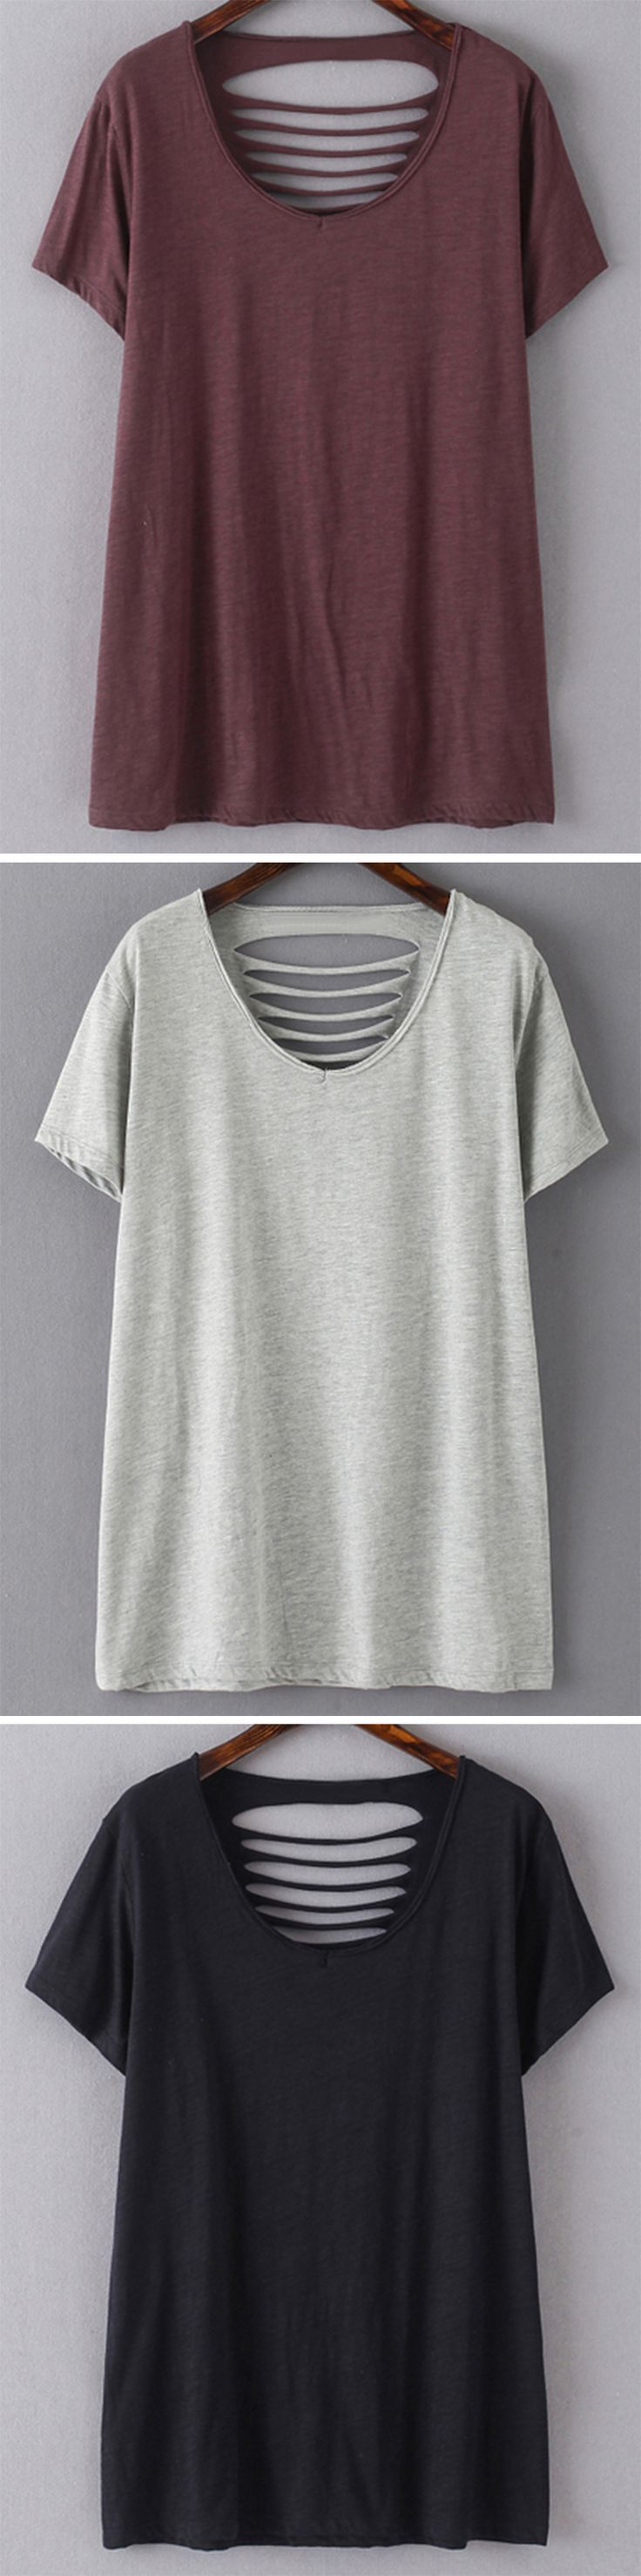 DIY: Cut large T-Shirt.                                                                                                                                                      More